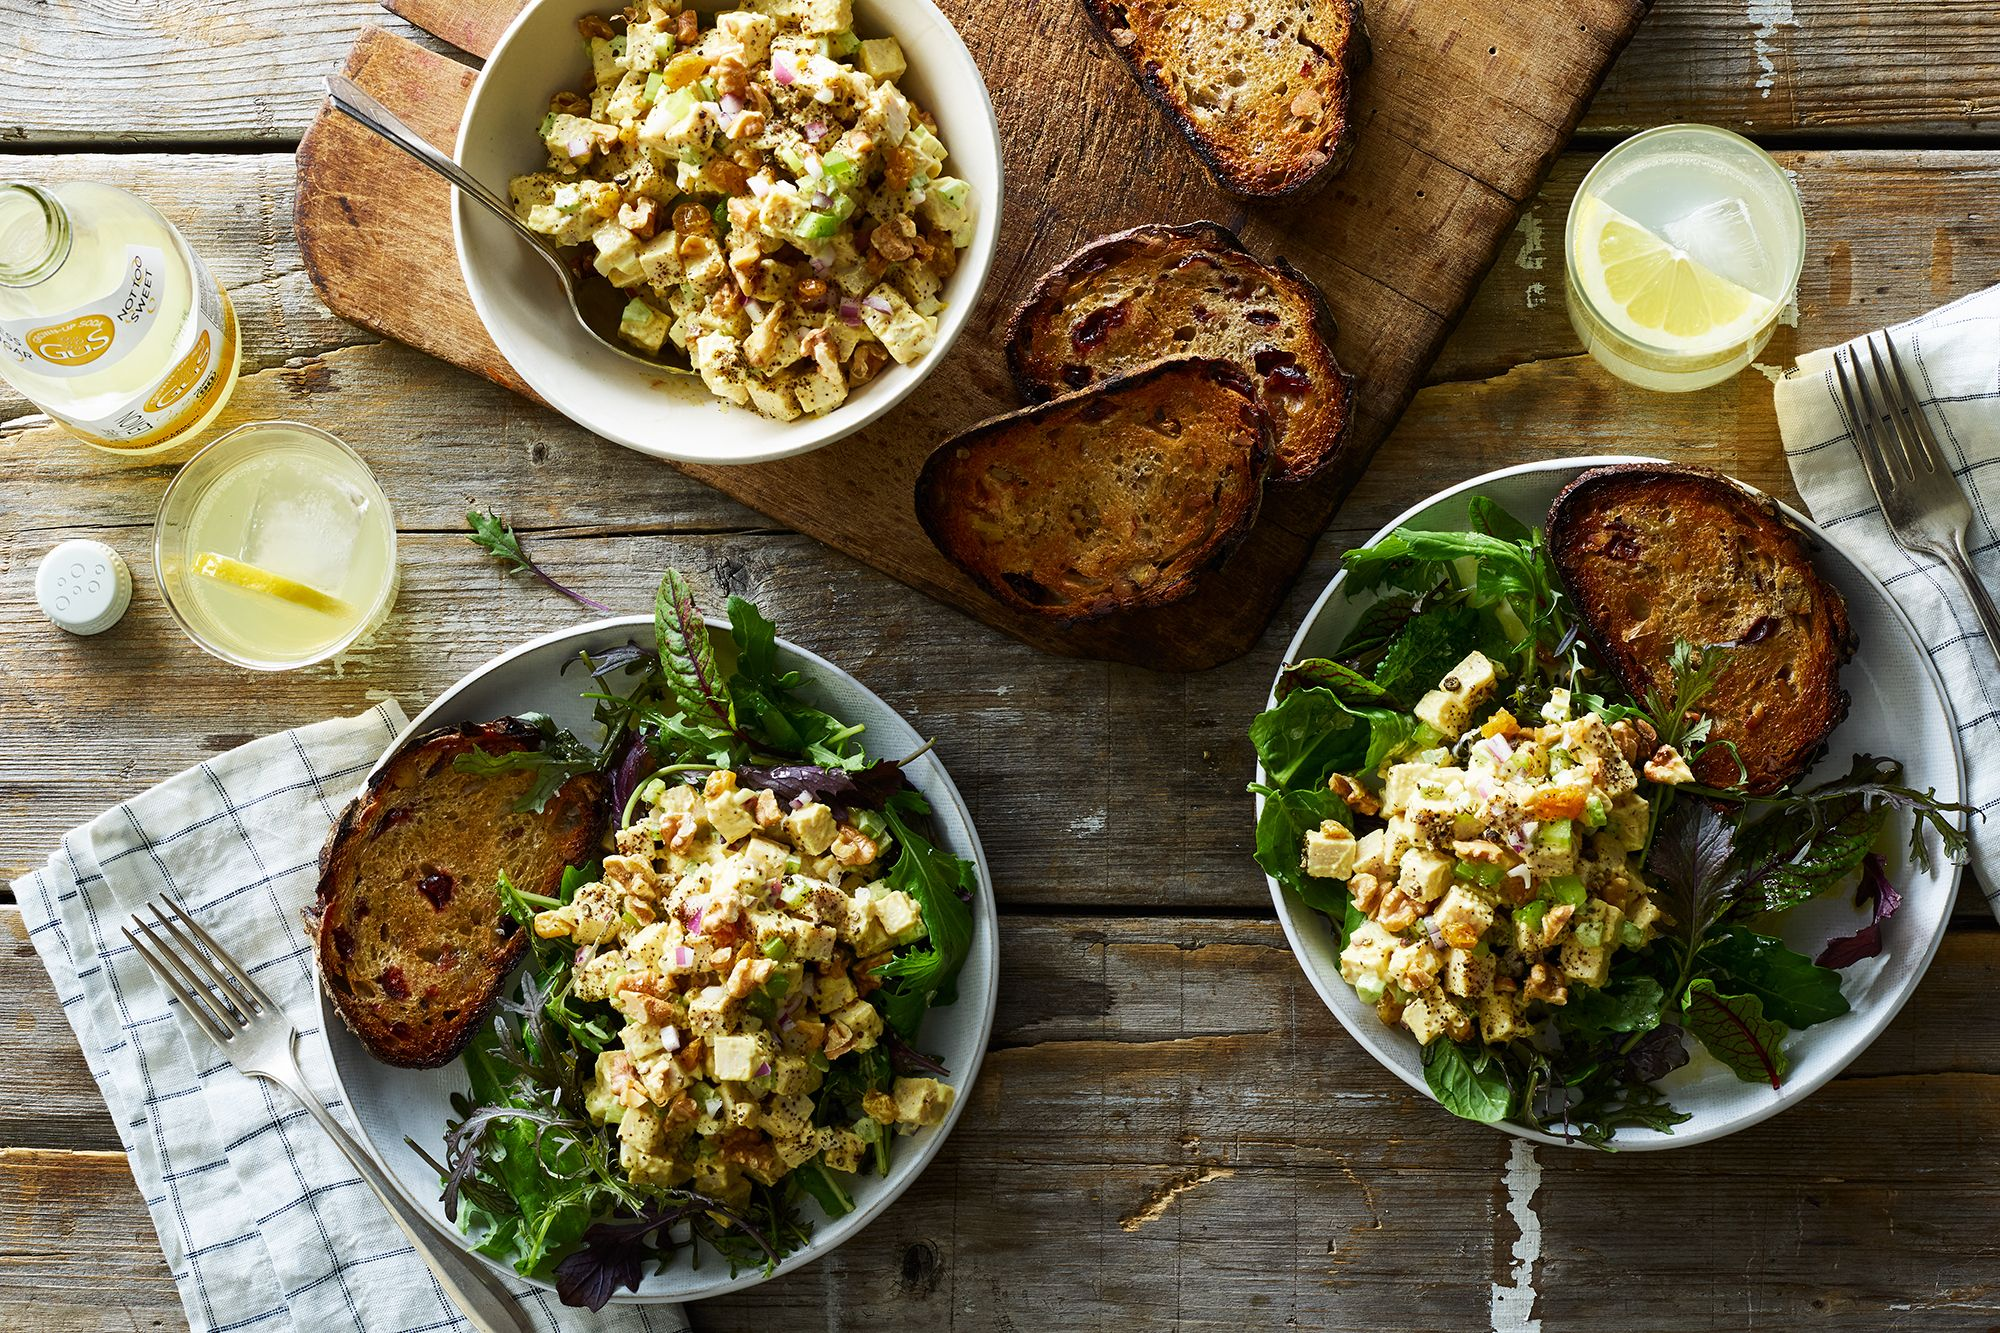 15 Make-Ahead Lunches That'll Be the Envy of the Office